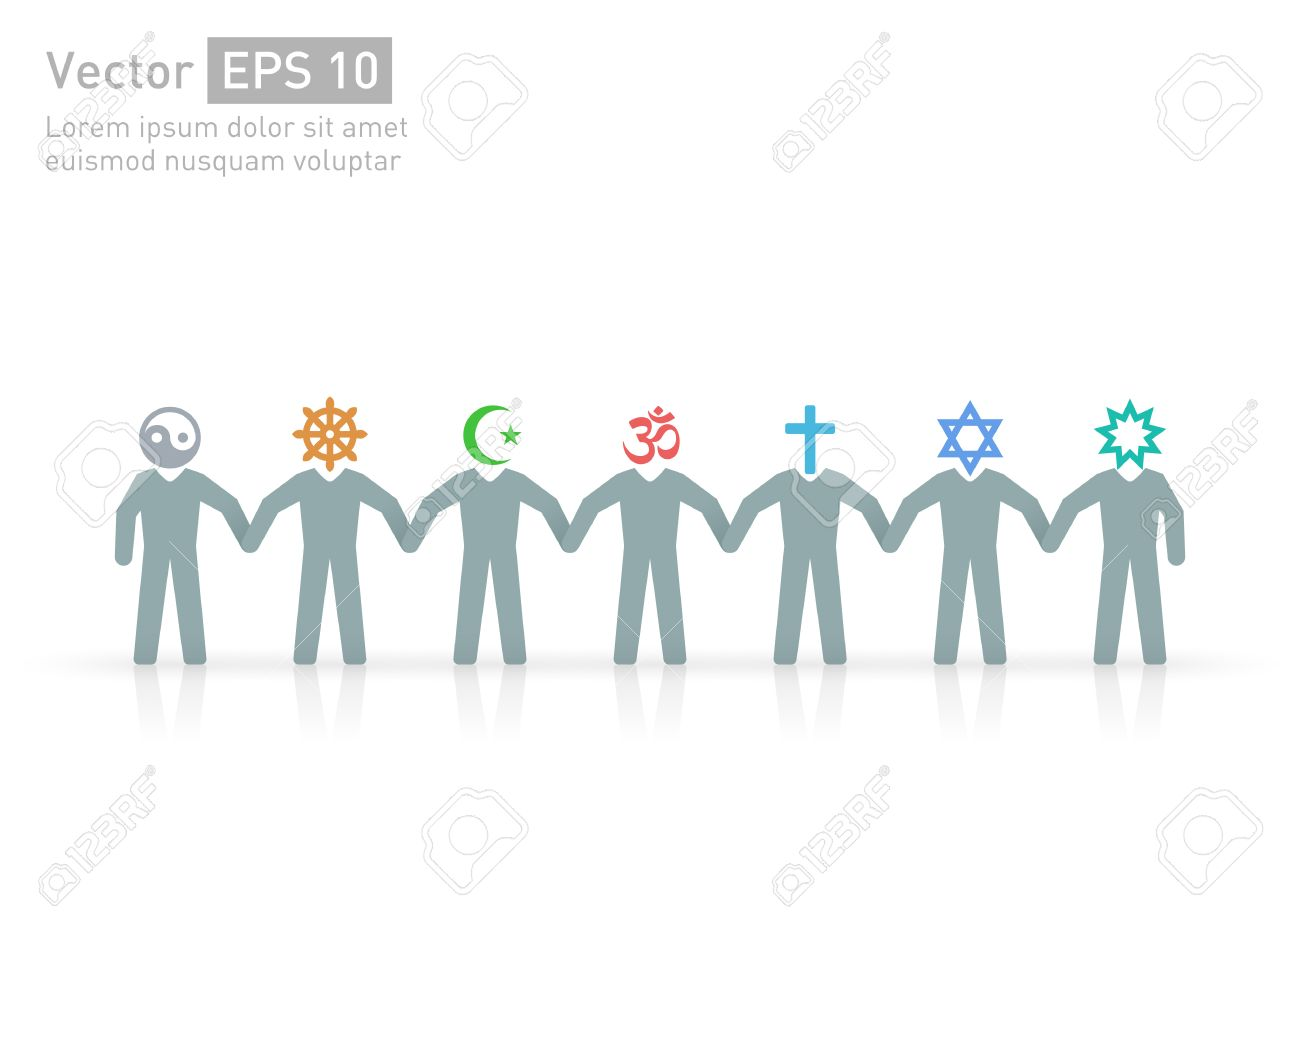 People of different religions and creed. Islam (Muslim), Judaism (Jew), Buddhism (???Buddhist ), Christianity, Hinduism (Hindu), Bahia(?Bahaee), taoism (Taoist). Religion vector symbols and characters. friendship and peace for different creeds - 56508243